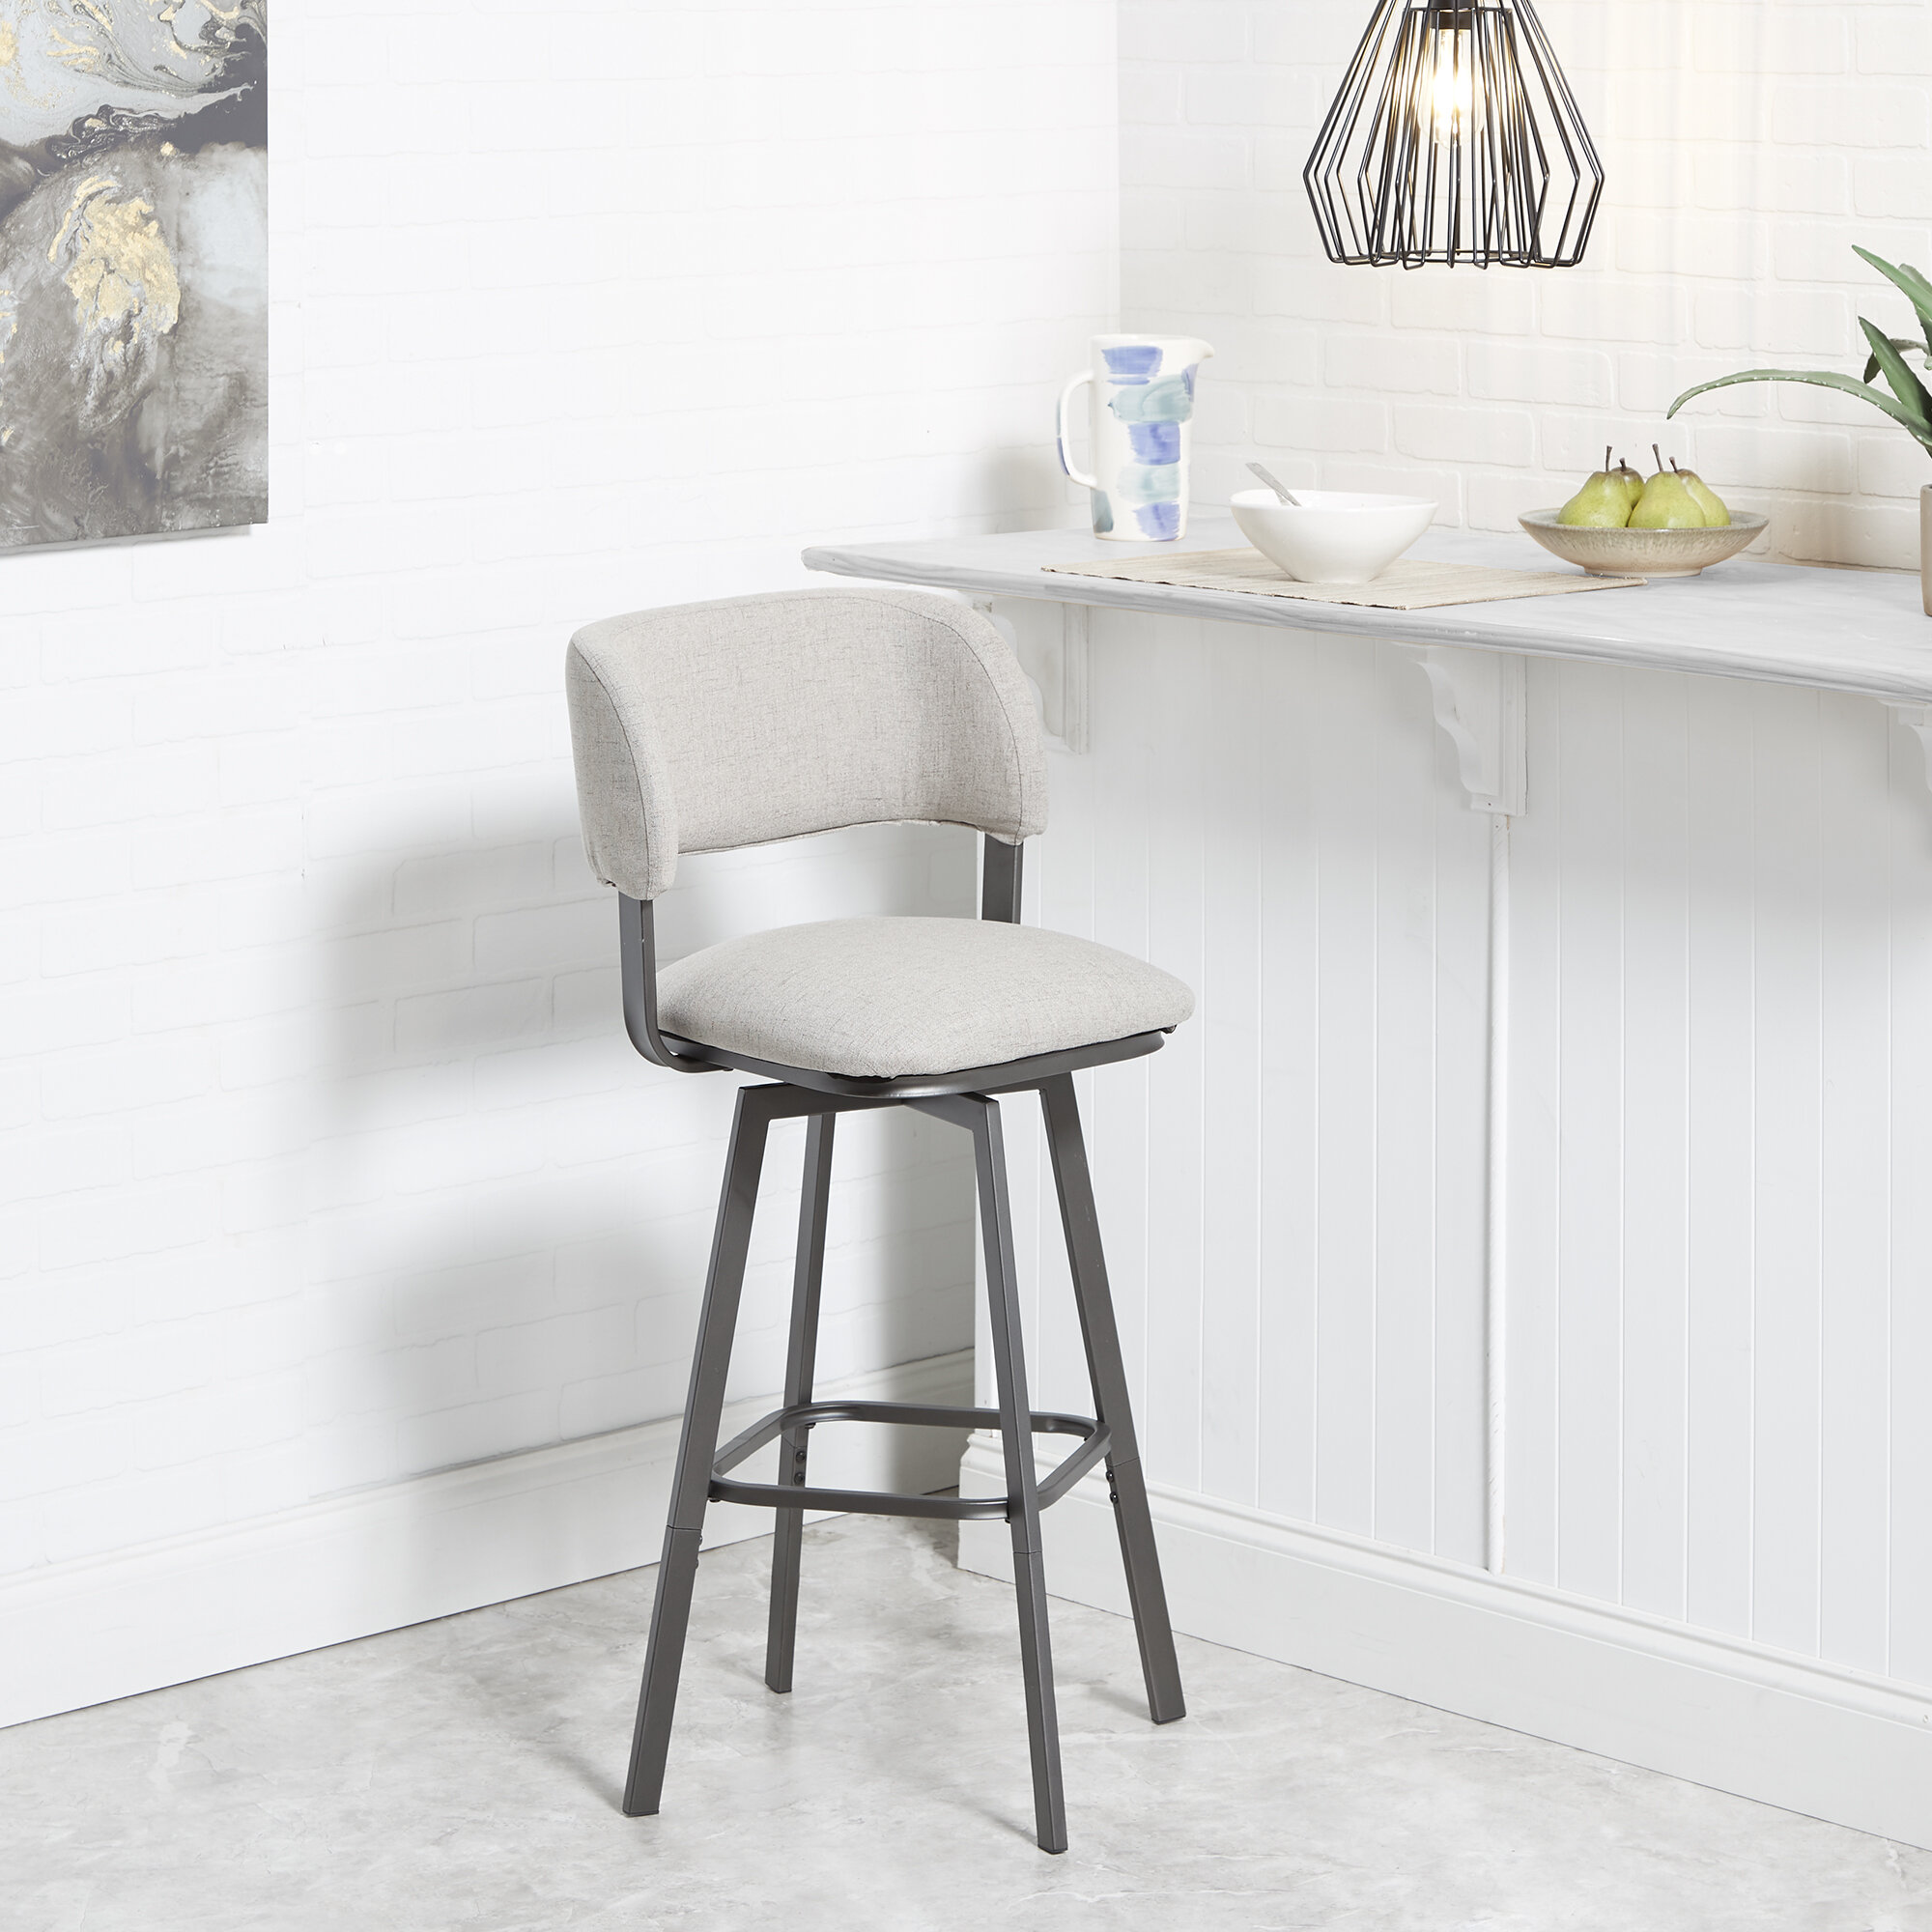 Astounding Ebern Designs Alydar Adjustable Height Swivel Bar Stool Gmtry Best Dining Table And Chair Ideas Images Gmtryco